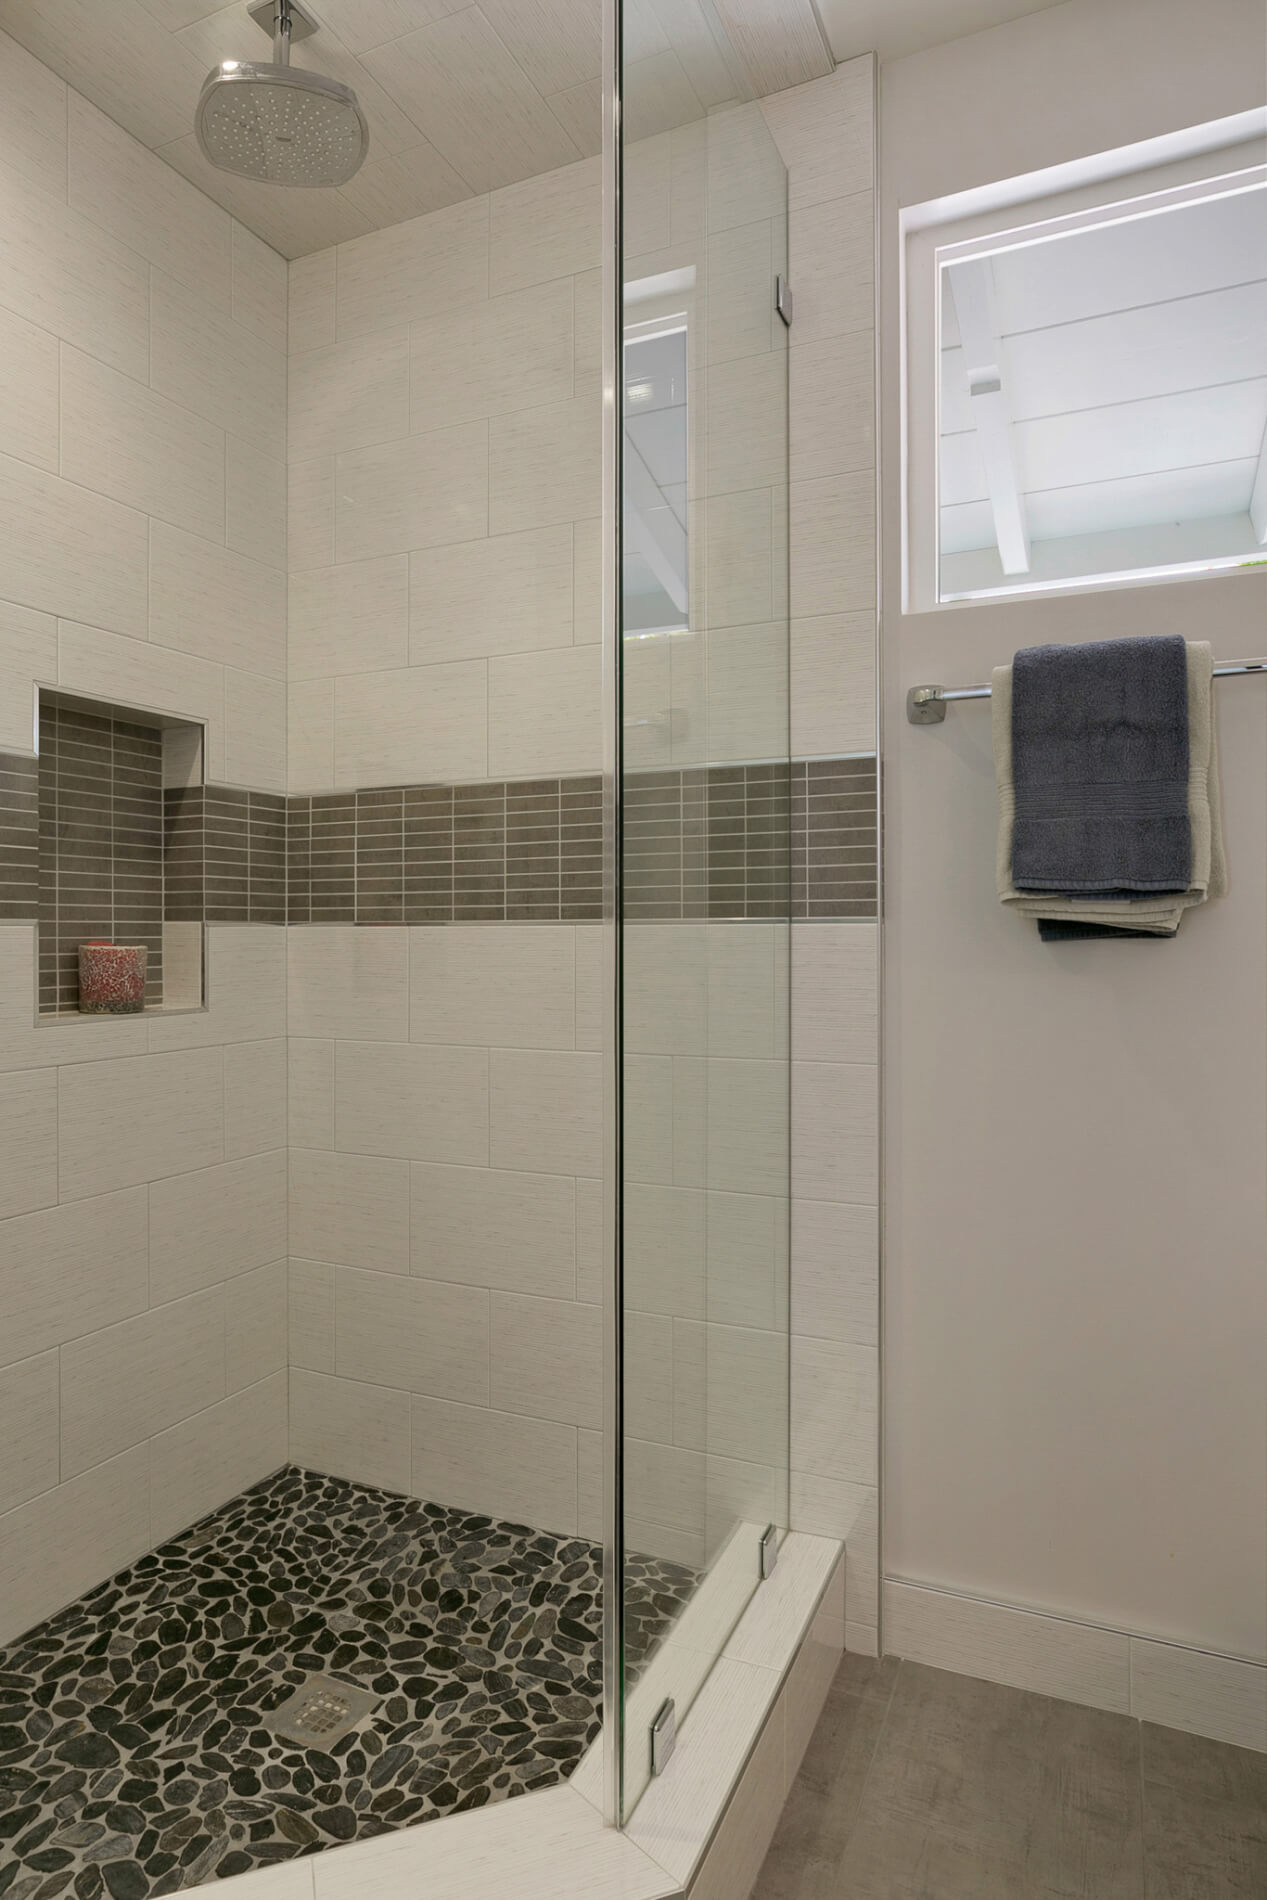 Pebble On Shower Floor Design, Custom Shower Design, Design Build Remodeling Services